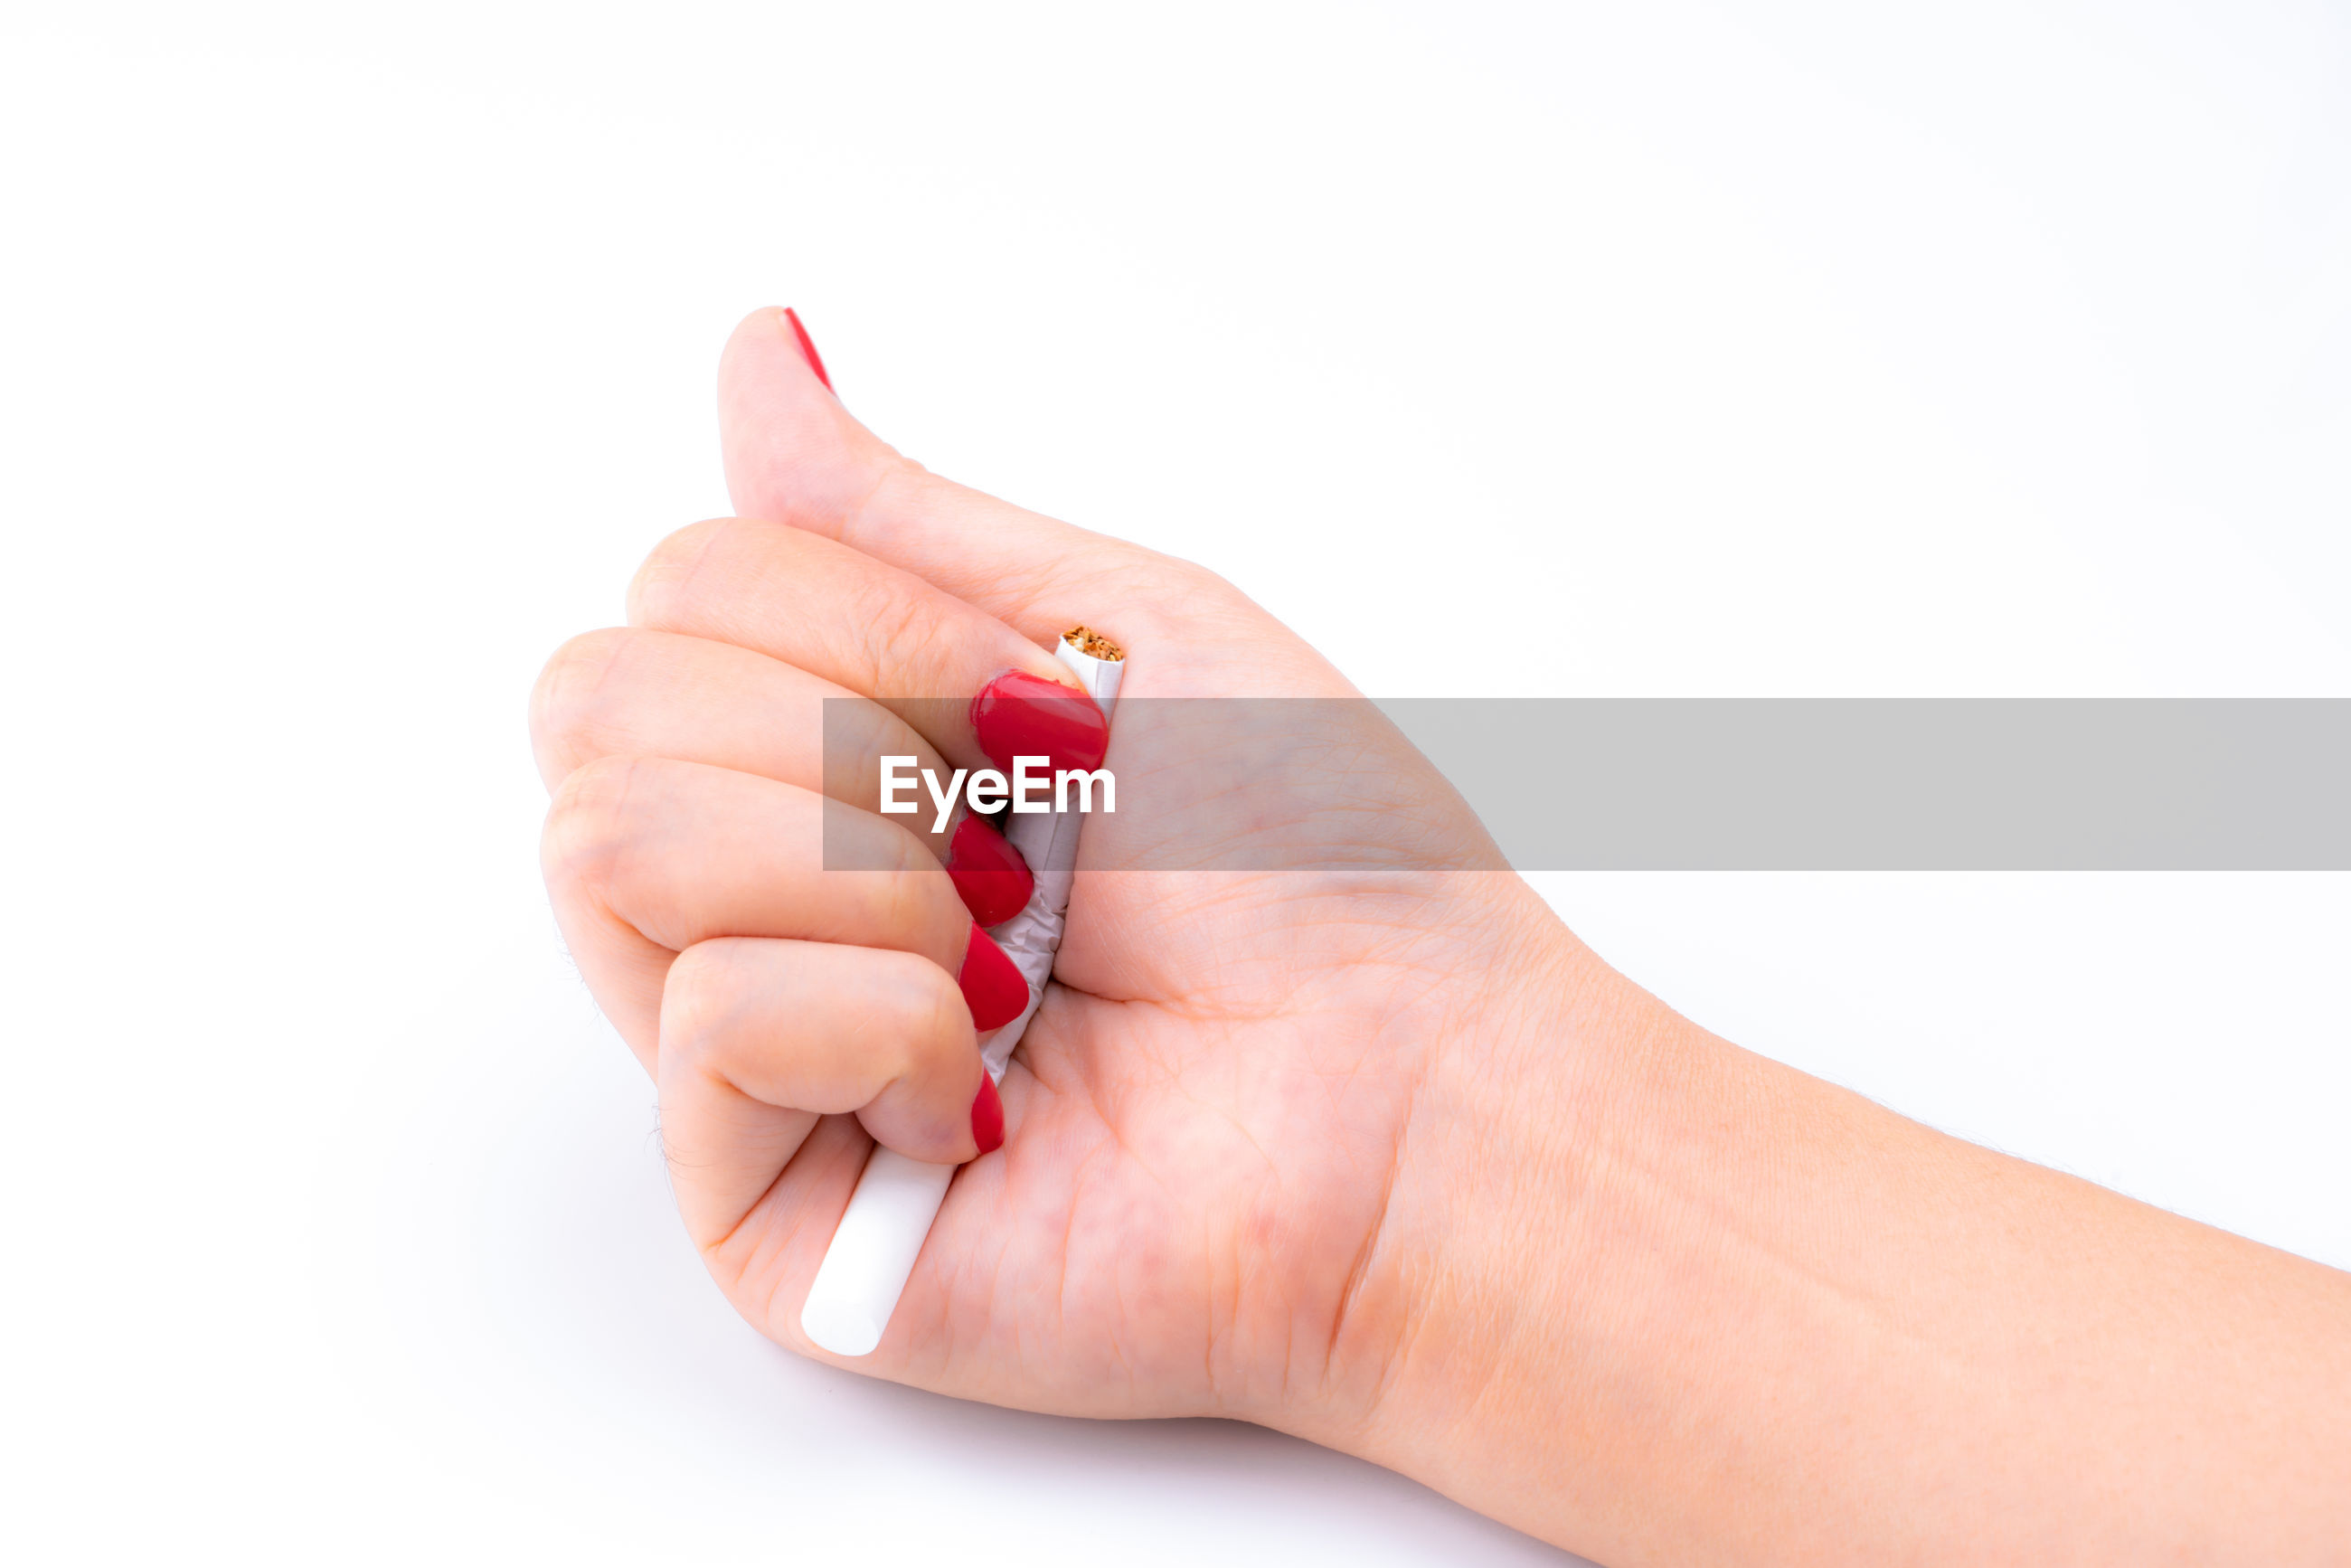 Close-up of hand breaking cigarette over white background